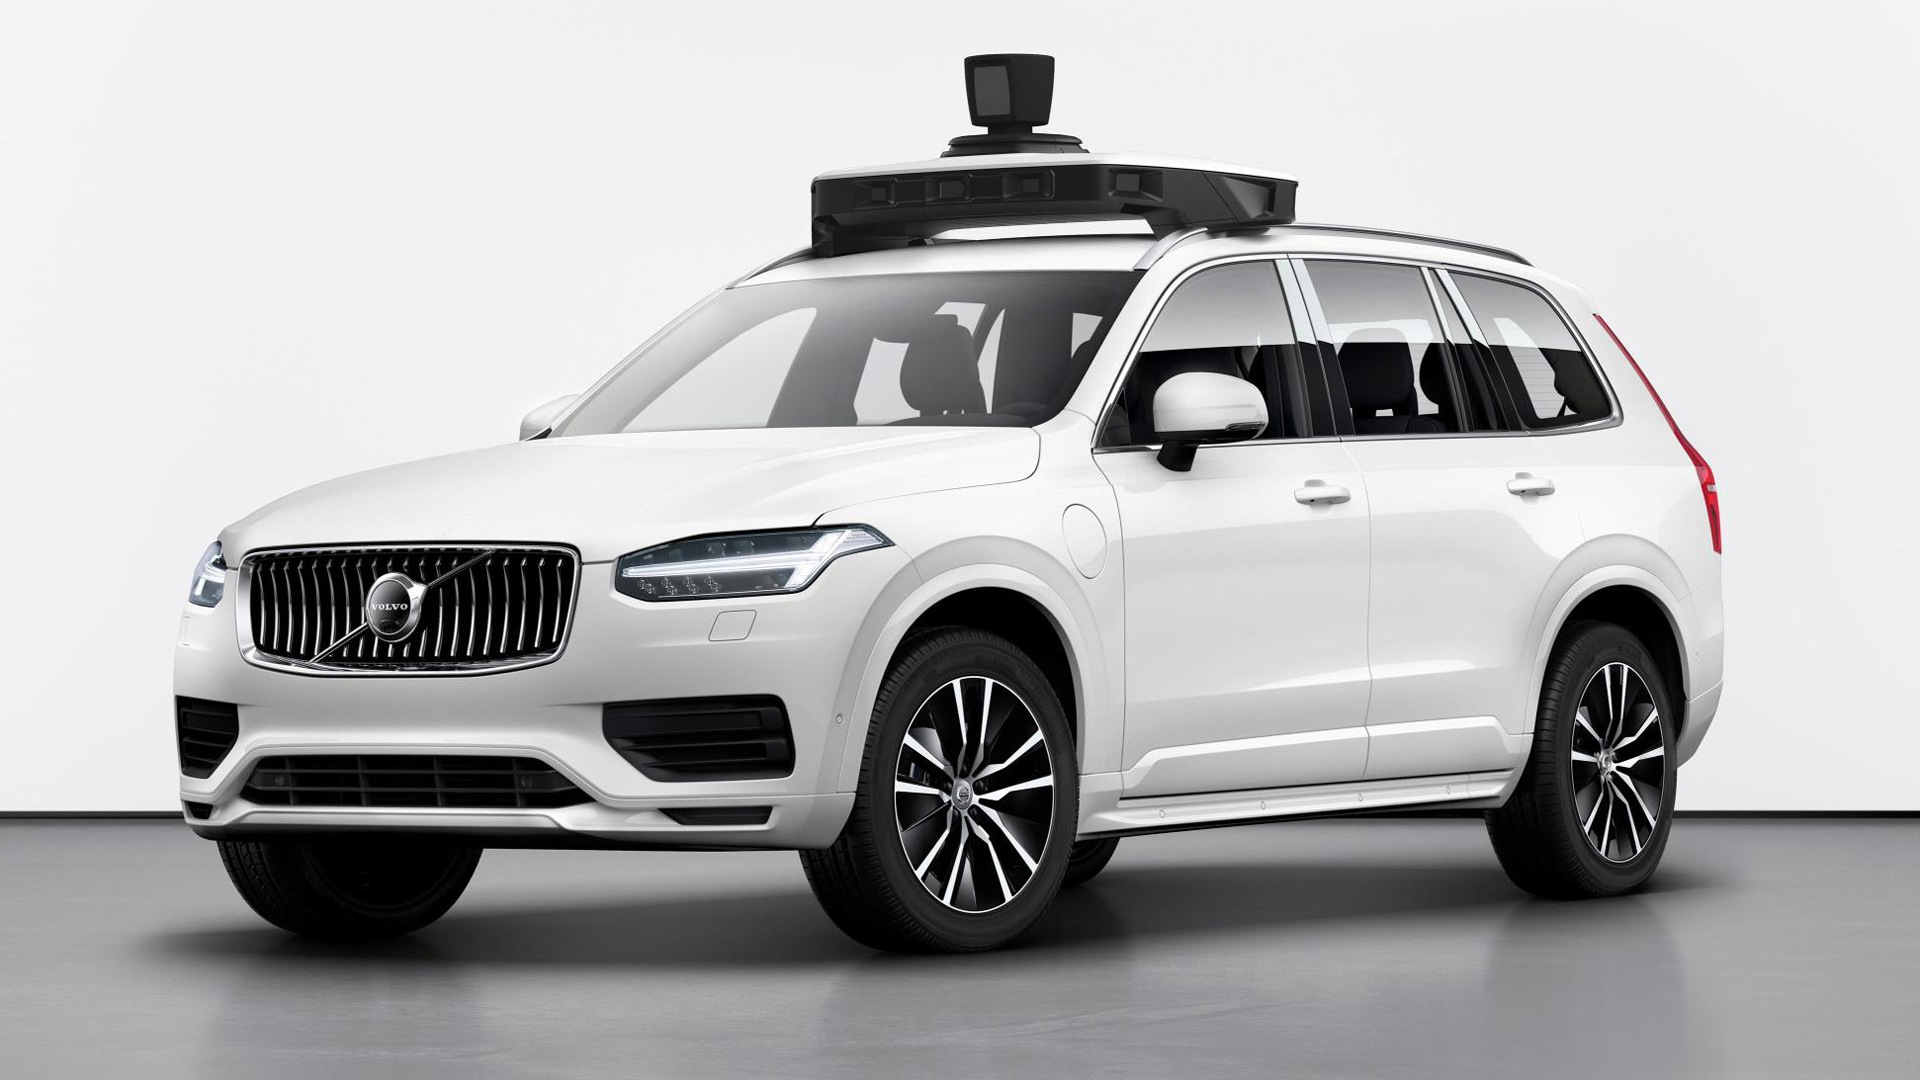 Volvo XC90 self-driving car prototype